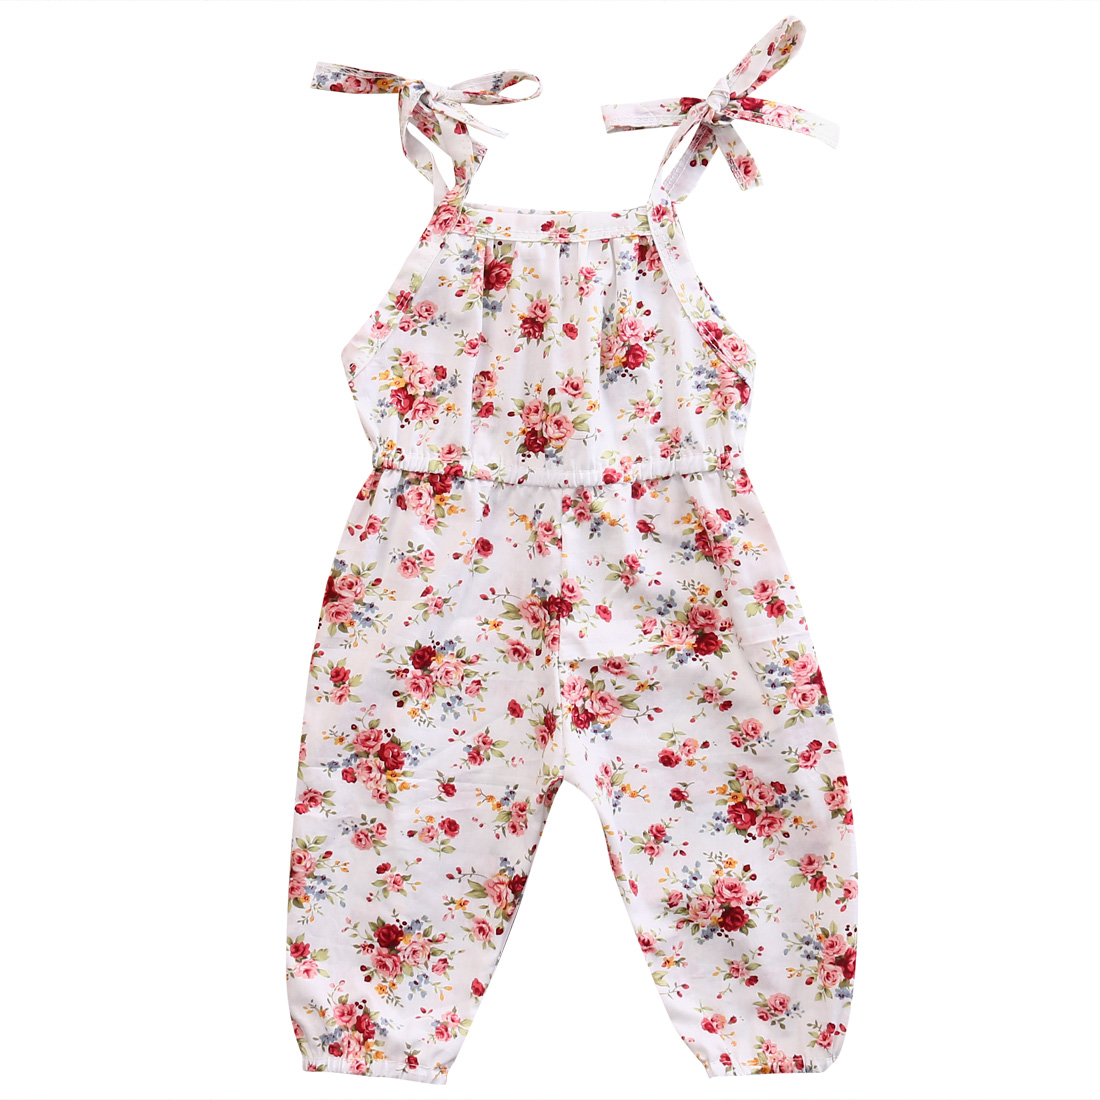 Lovely Floral Strap Romper Clothes Infant Kids Girls Summer Sleeveless Romper Jumpsuit Outfits Sunsuit Cotton Clothing White